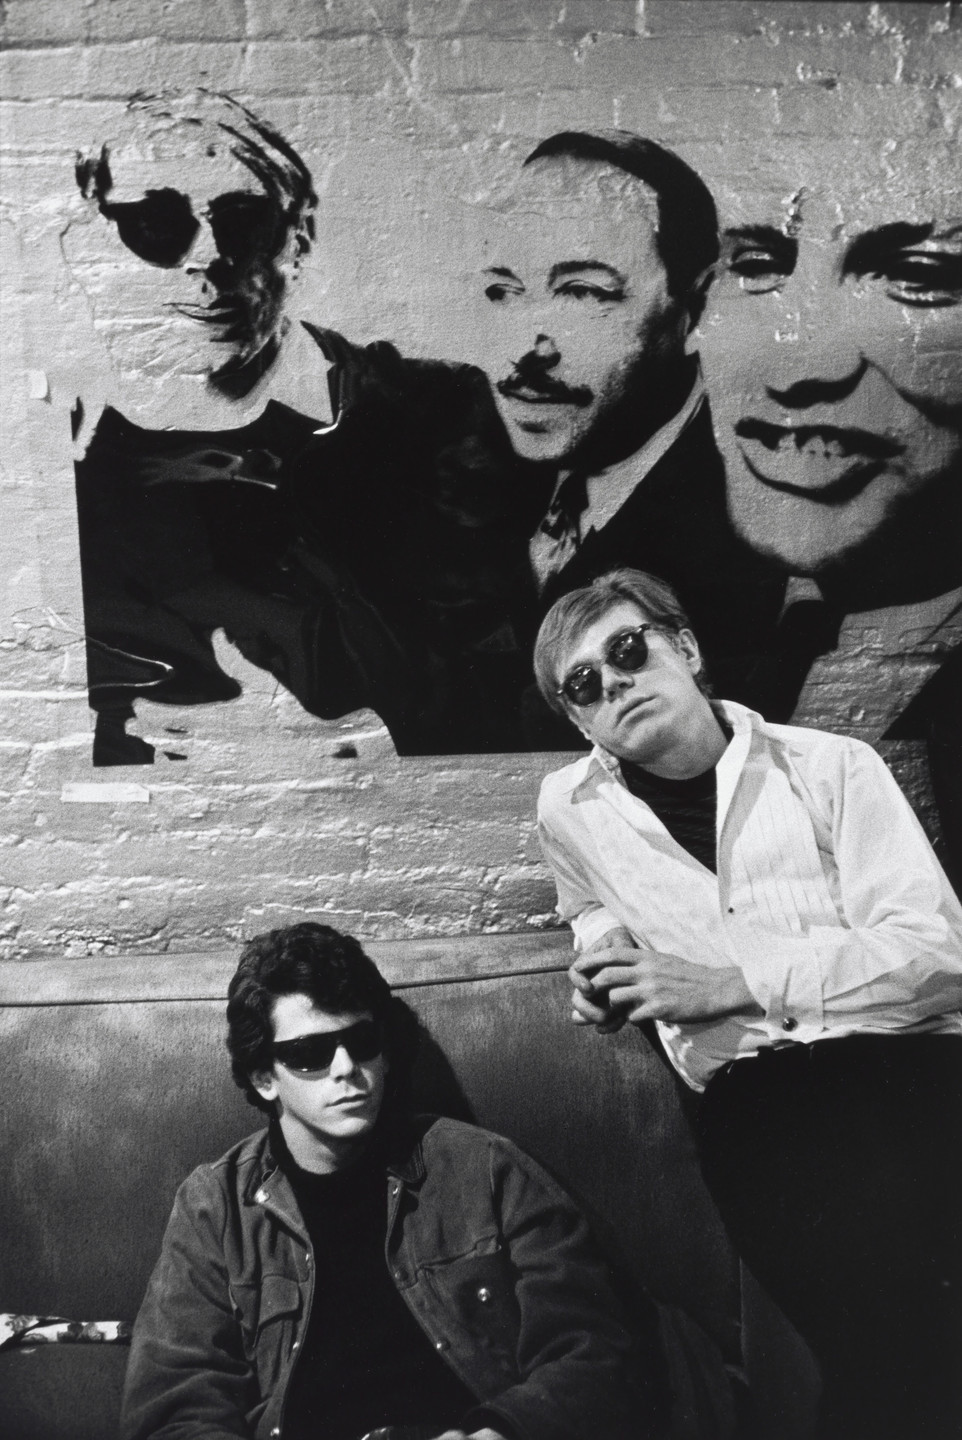 Stephen Shore. Lou Reed and Andy Warhol, the Factory, New York, New York. 1966–1967